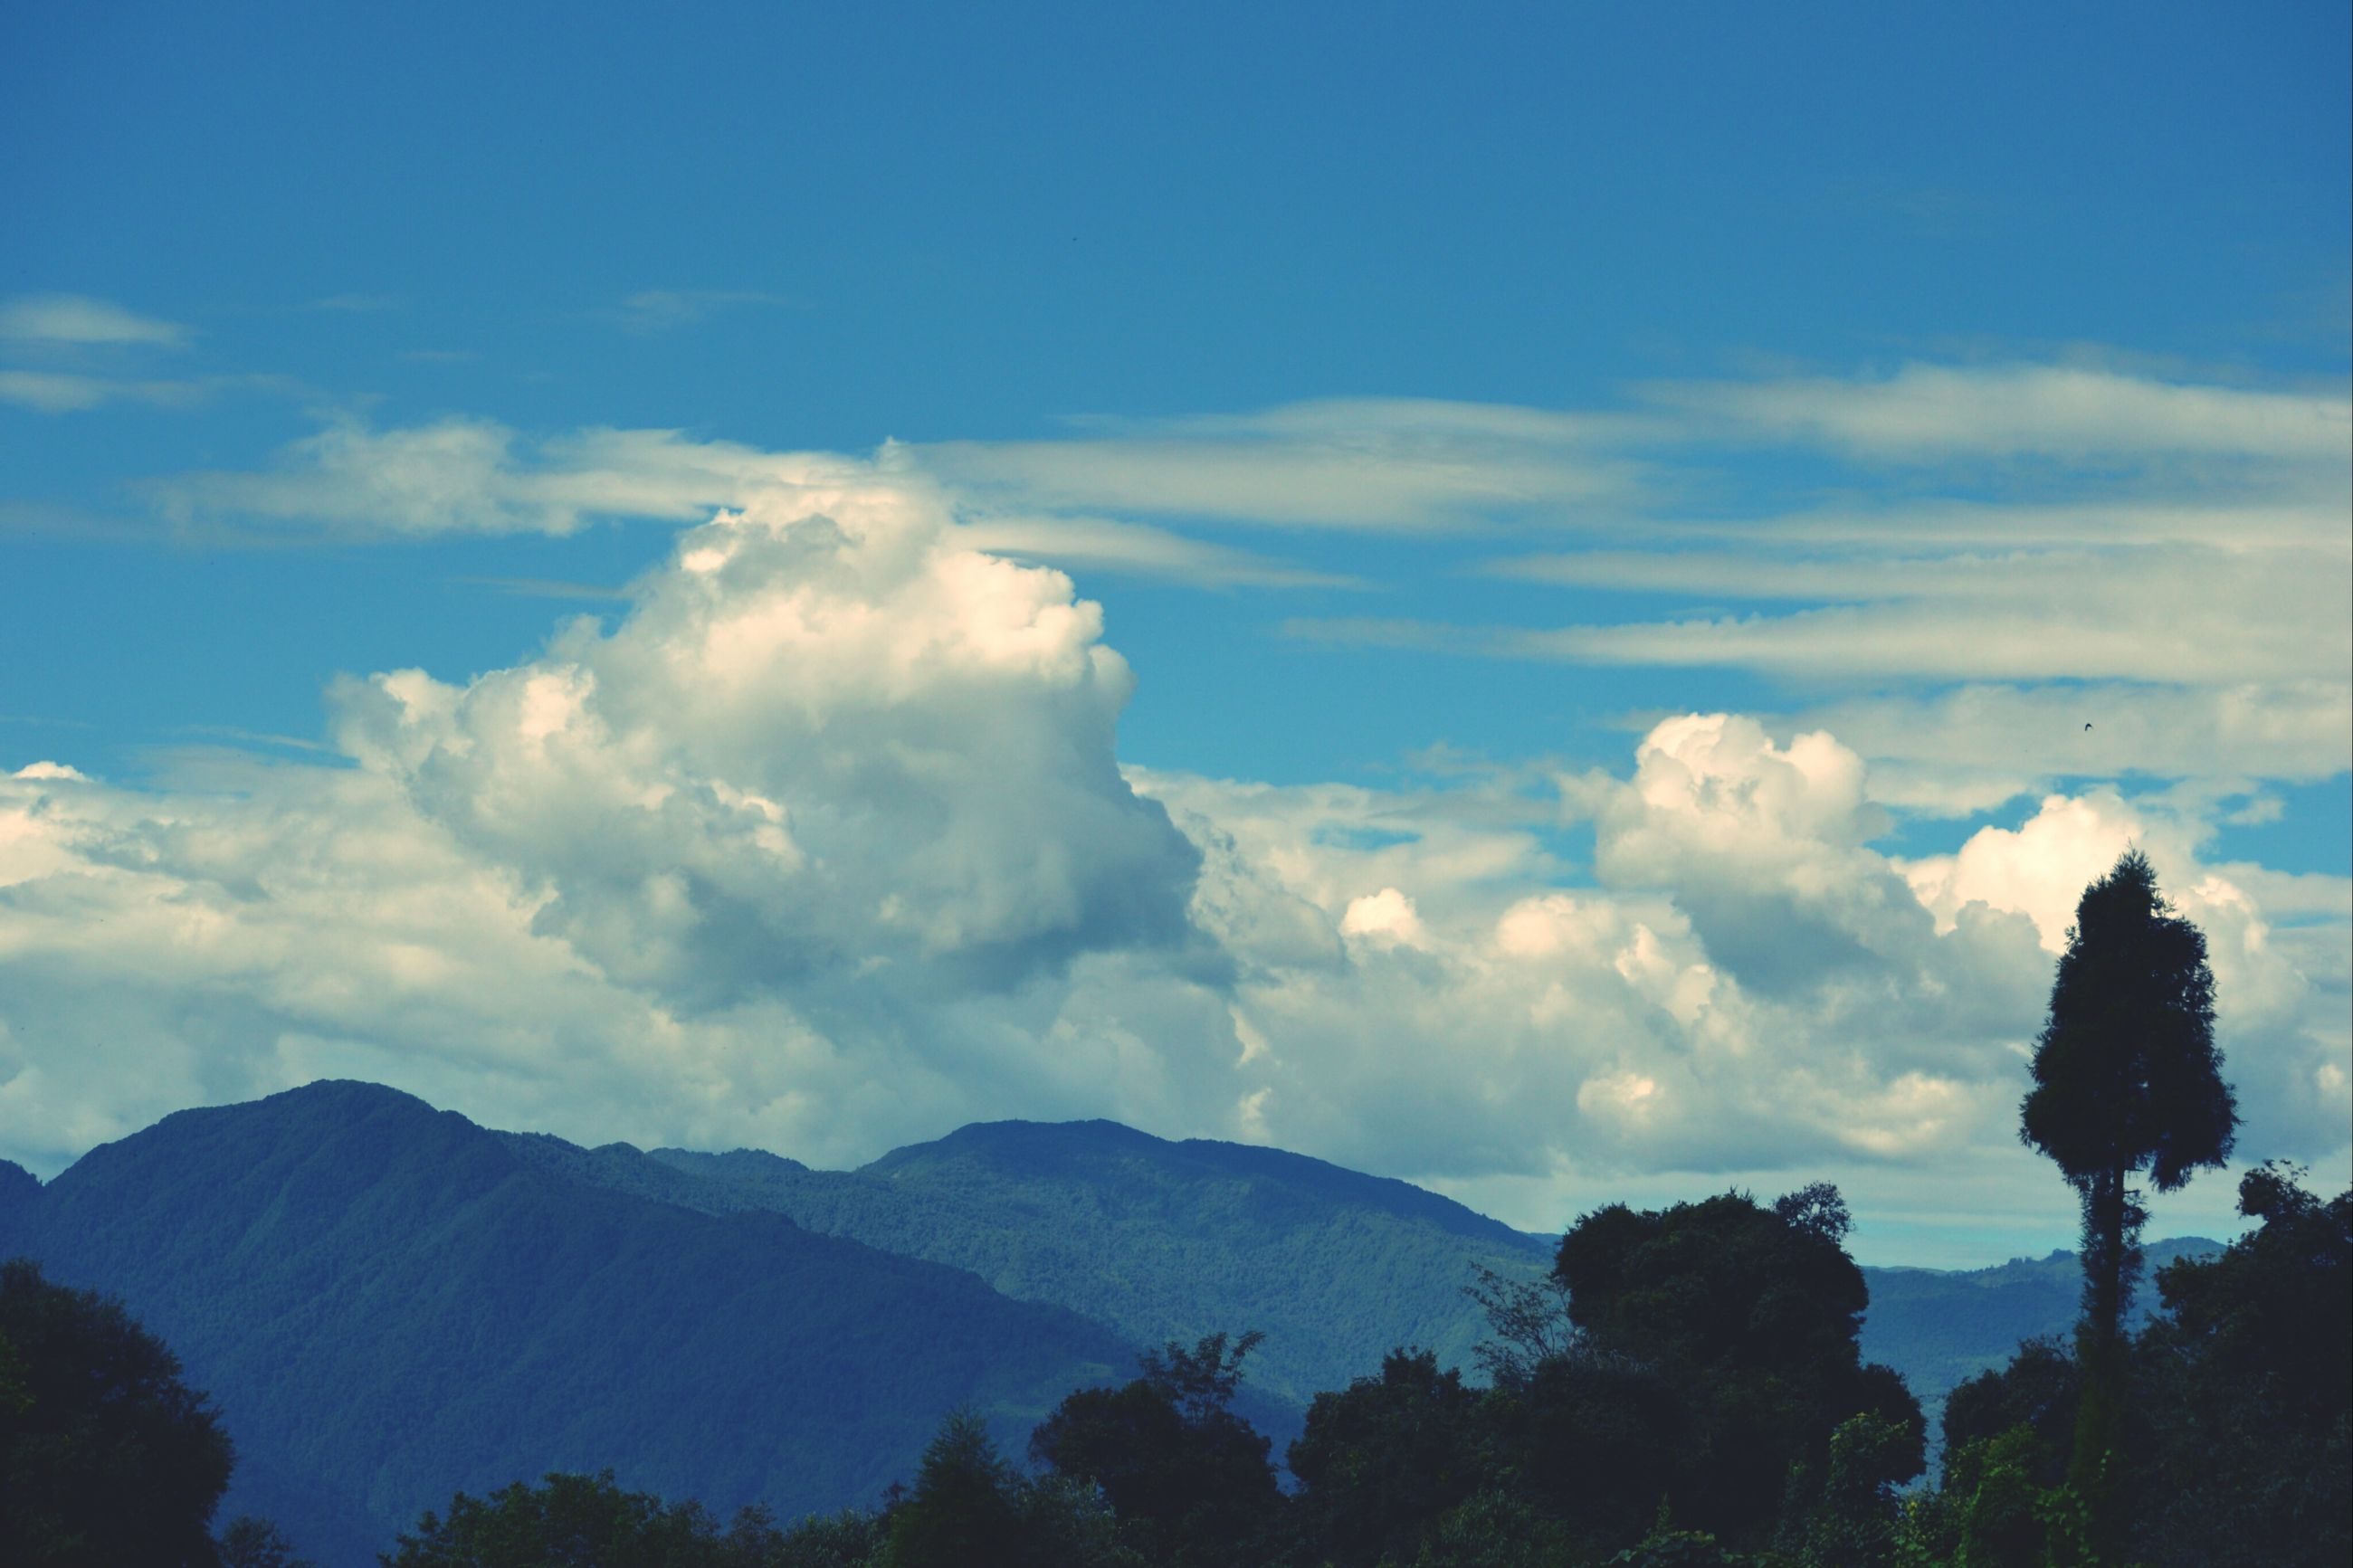 mountain, scenics, tranquil scene, tranquility, sky, beauty in nature, mountain range, tree, cloud - sky, nature, landscape, cloud, idyllic, non-urban scene, blue, outdoors, day, remote, silhouette, no people